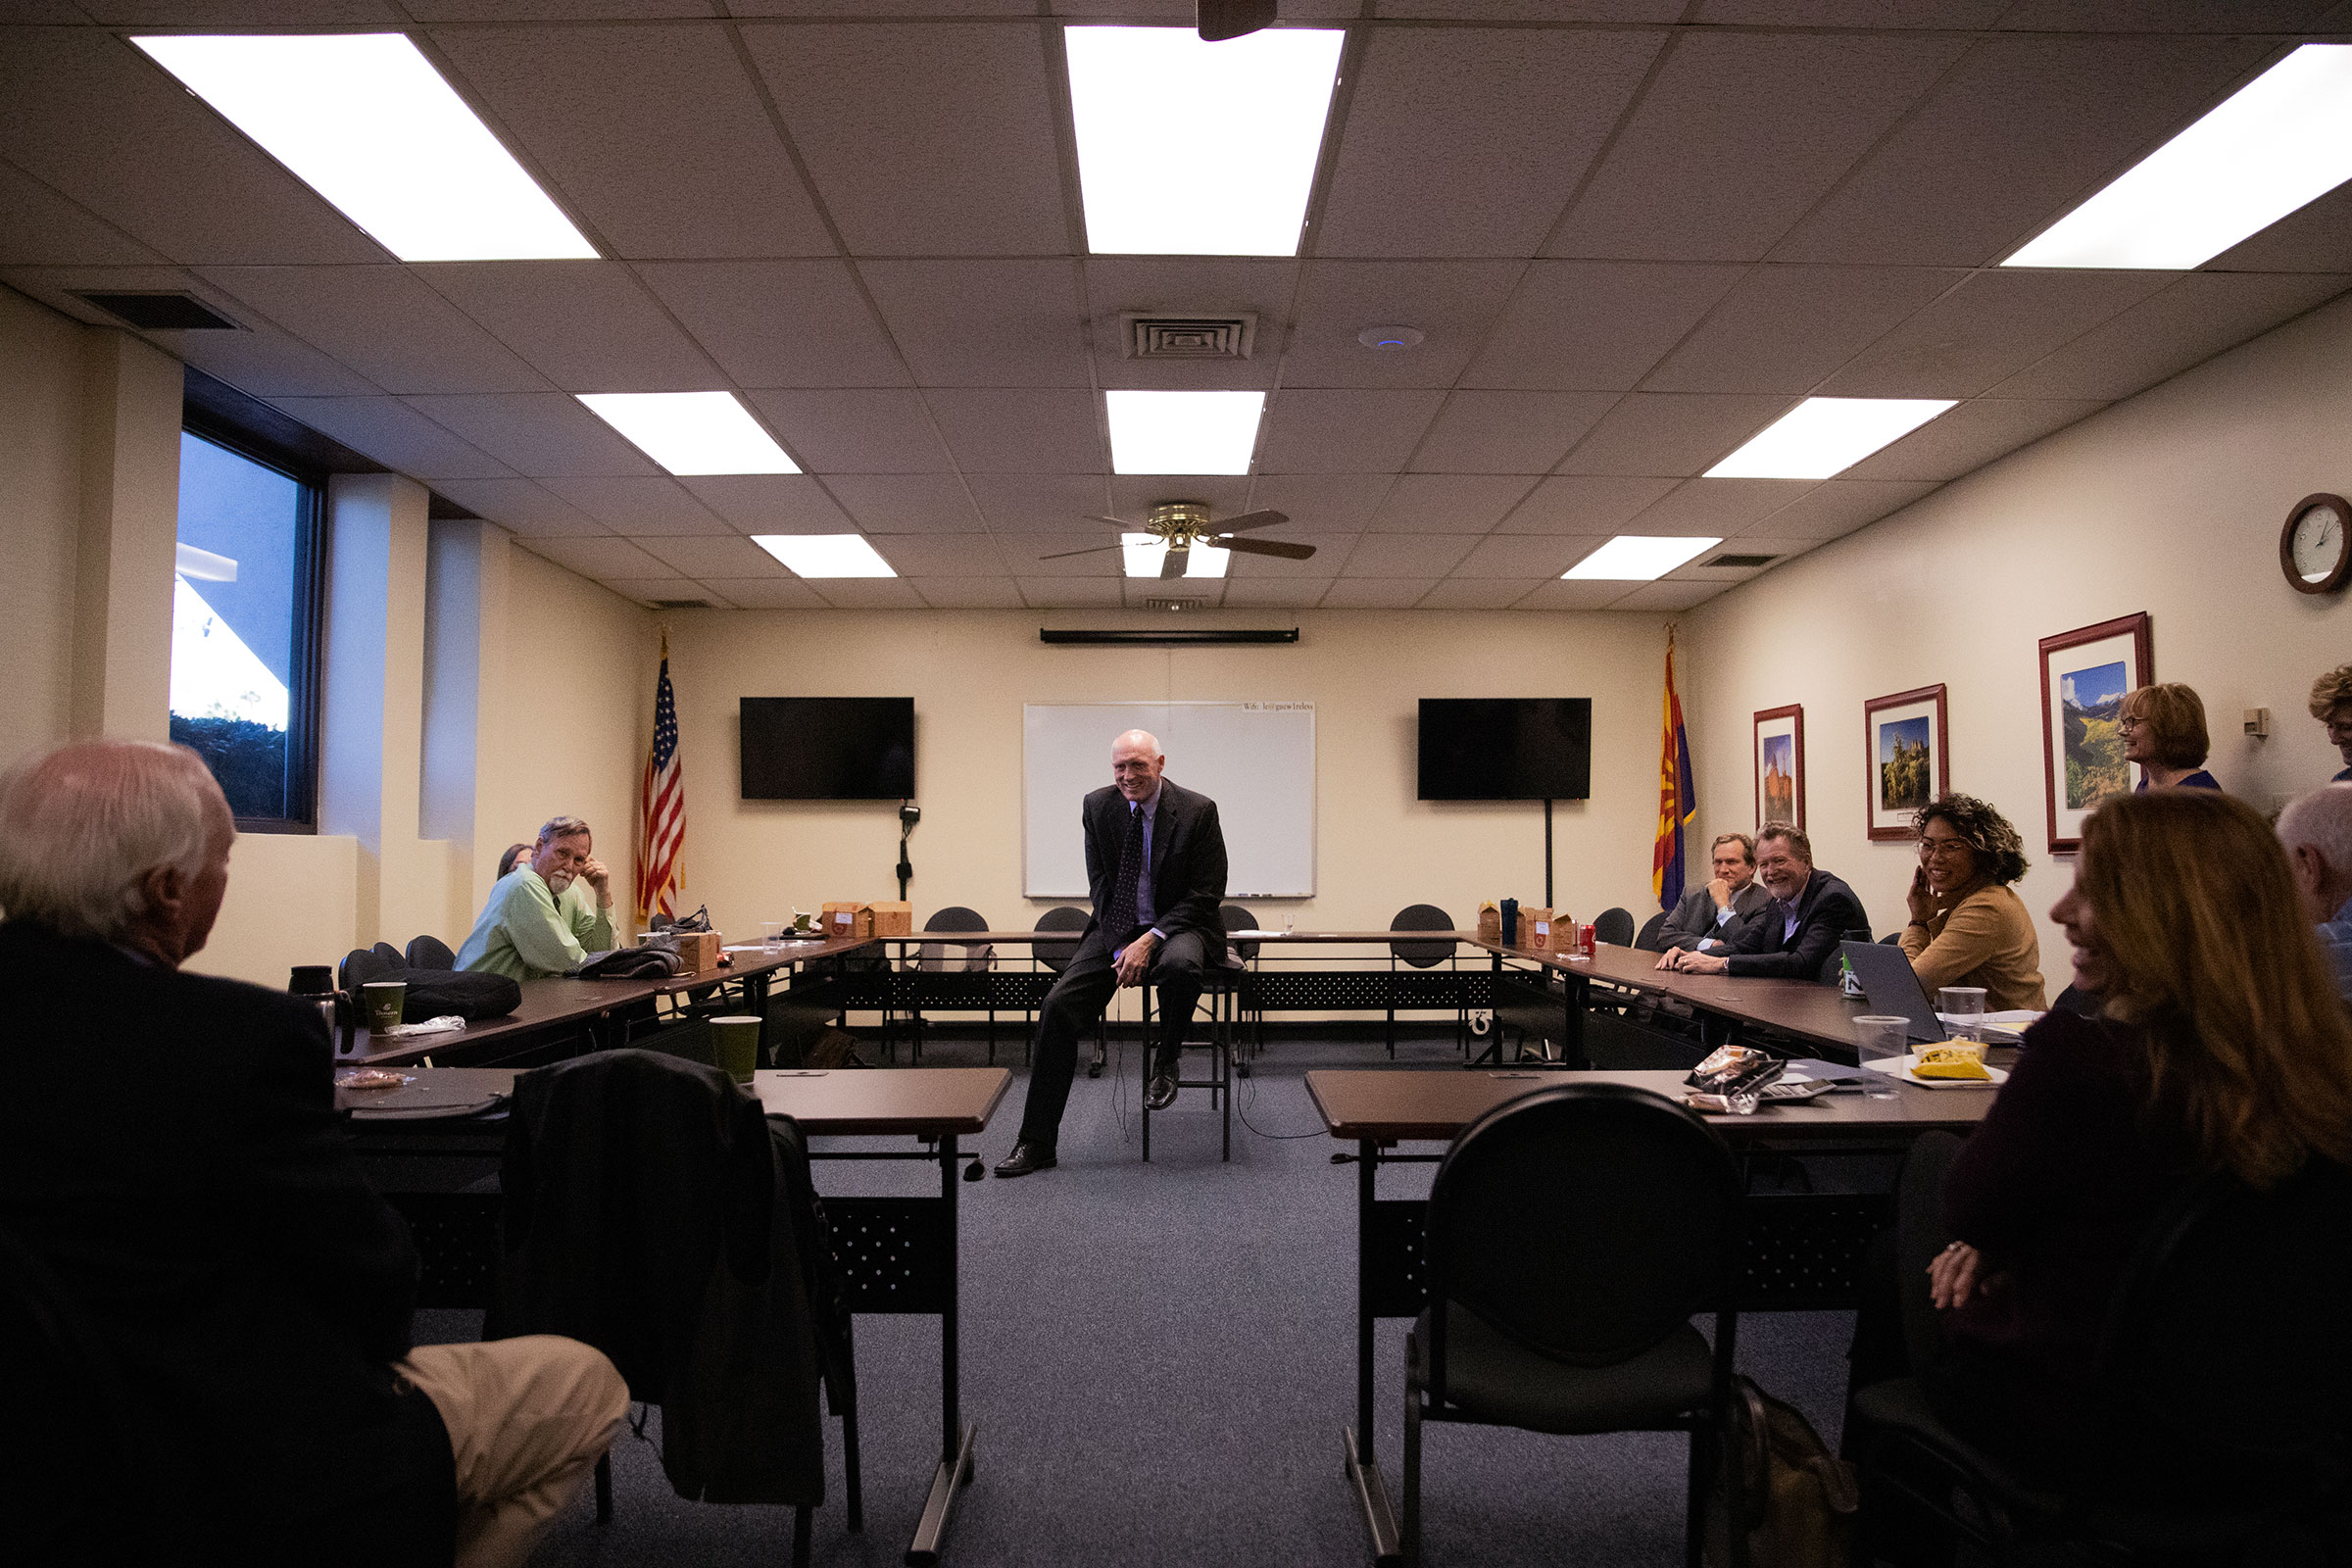 Rep. Russell Bowers addresses folks from the WRAN over lunch in the Arizona Leagues of City and Towns building on the legislative campus. Dominic Arenas/Audubon